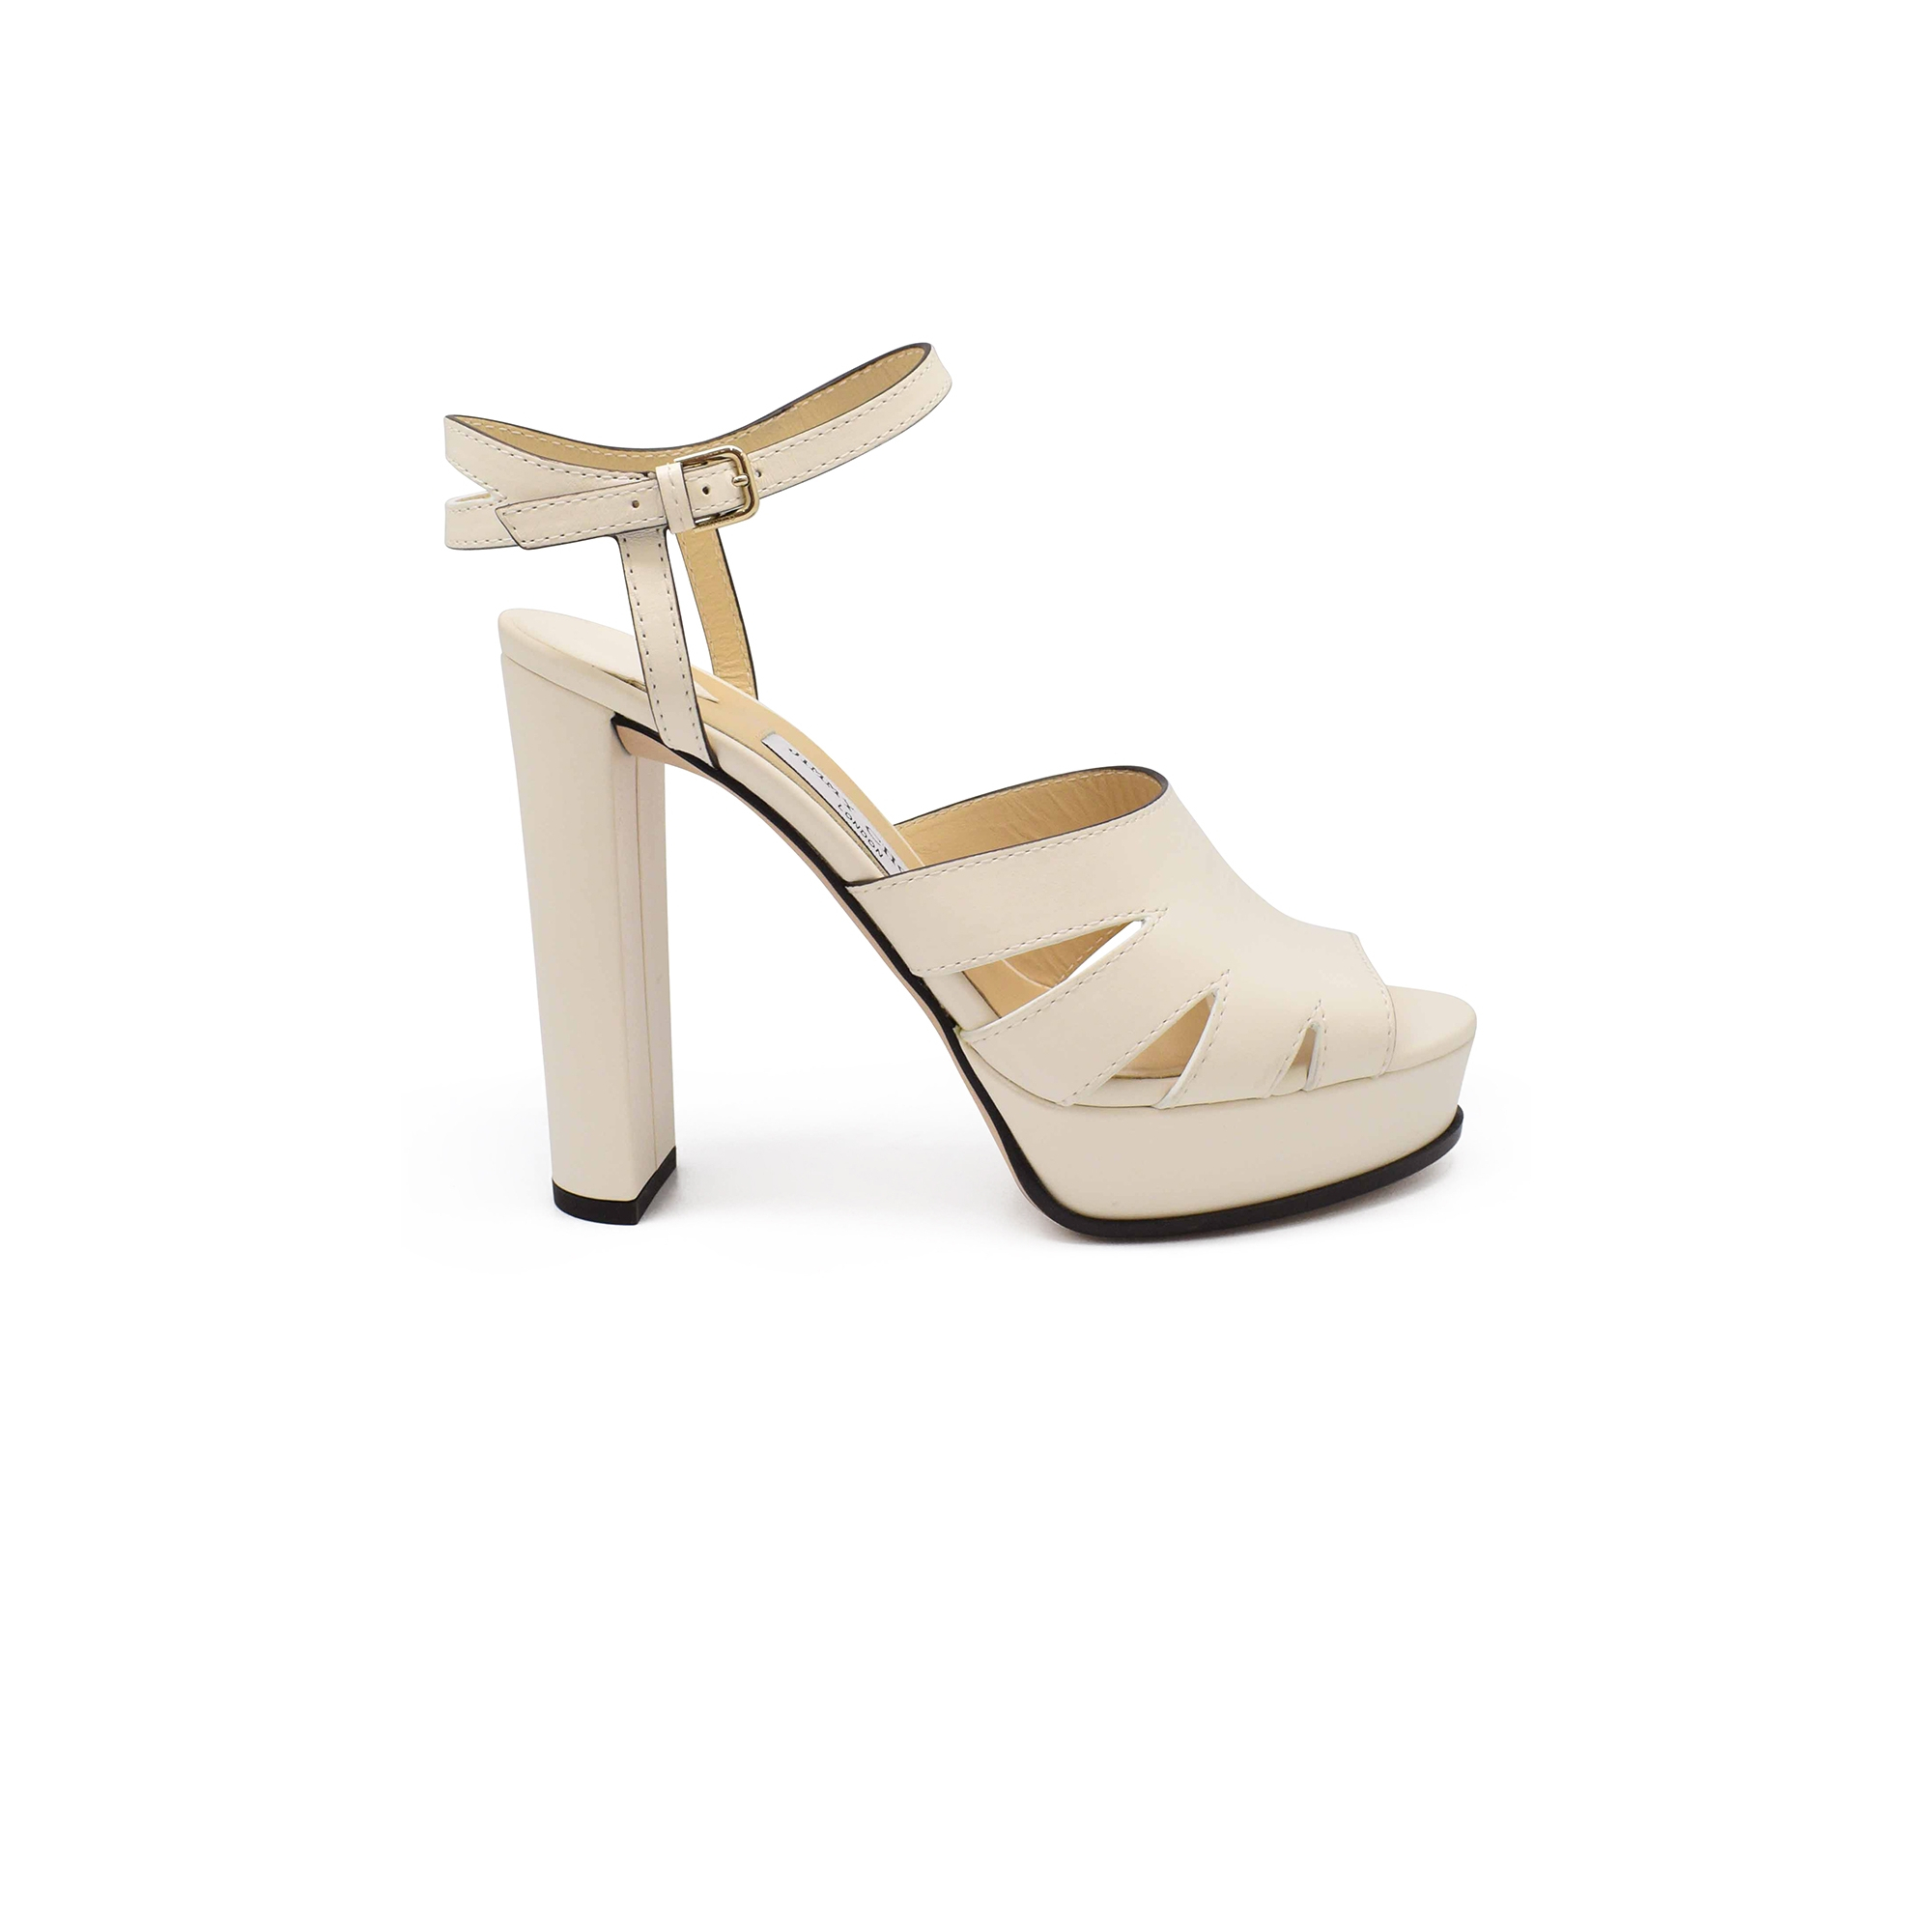 Jimmy Choo Hermione 120 high sandals in white leather